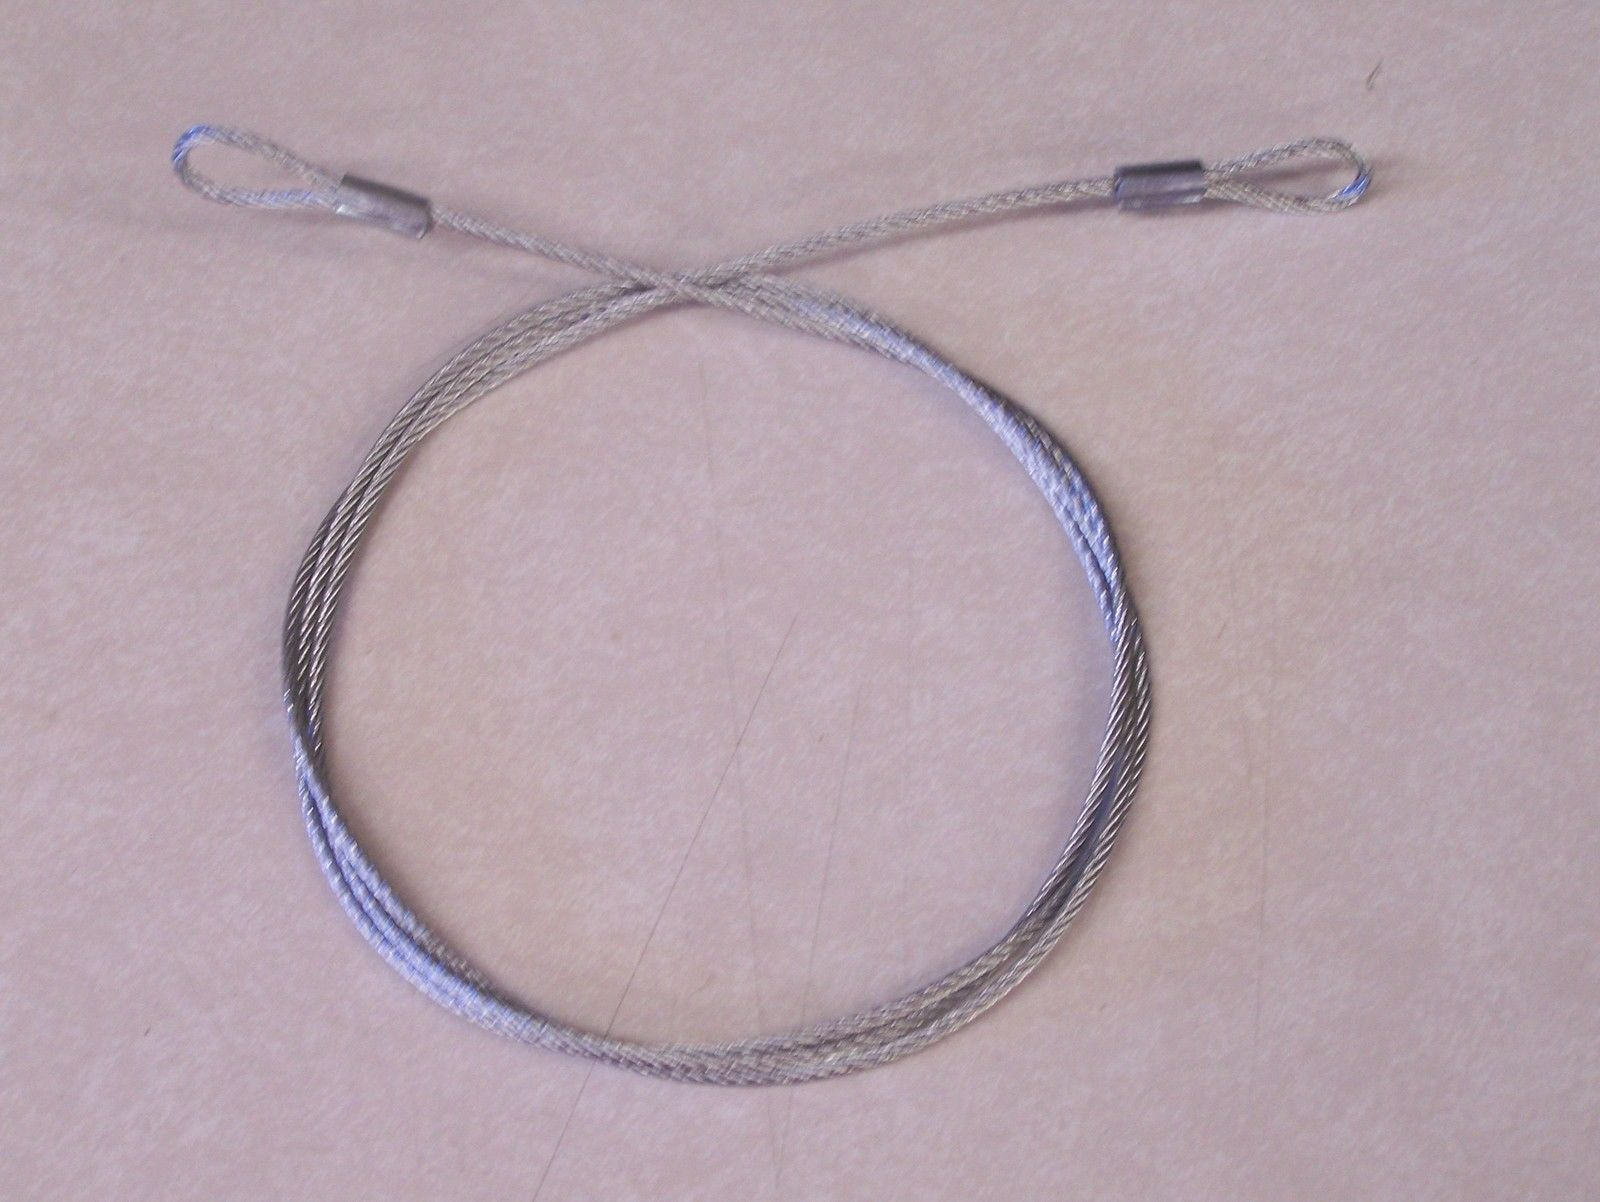 "Starcraft Cable Assy 65 1/4"" 92 Vista Drwg#92050139"